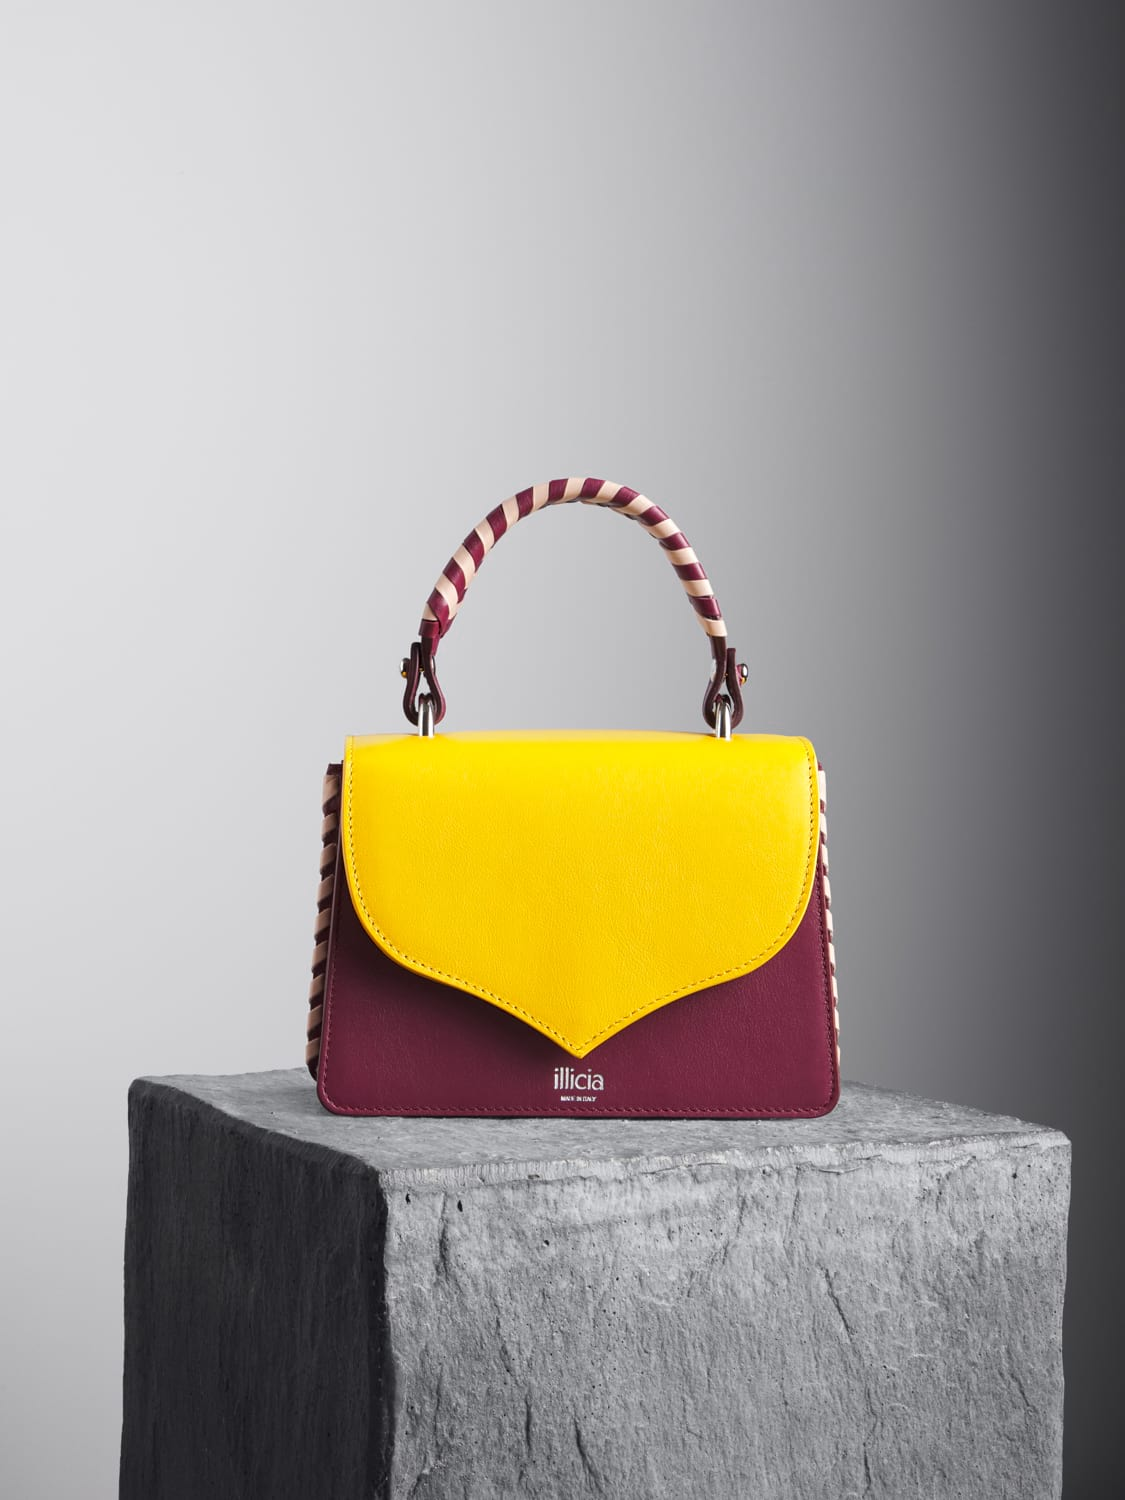 Celina 2.0 Yellow and Oxblood Top Handle Bag with oxblood and nude braided handle,